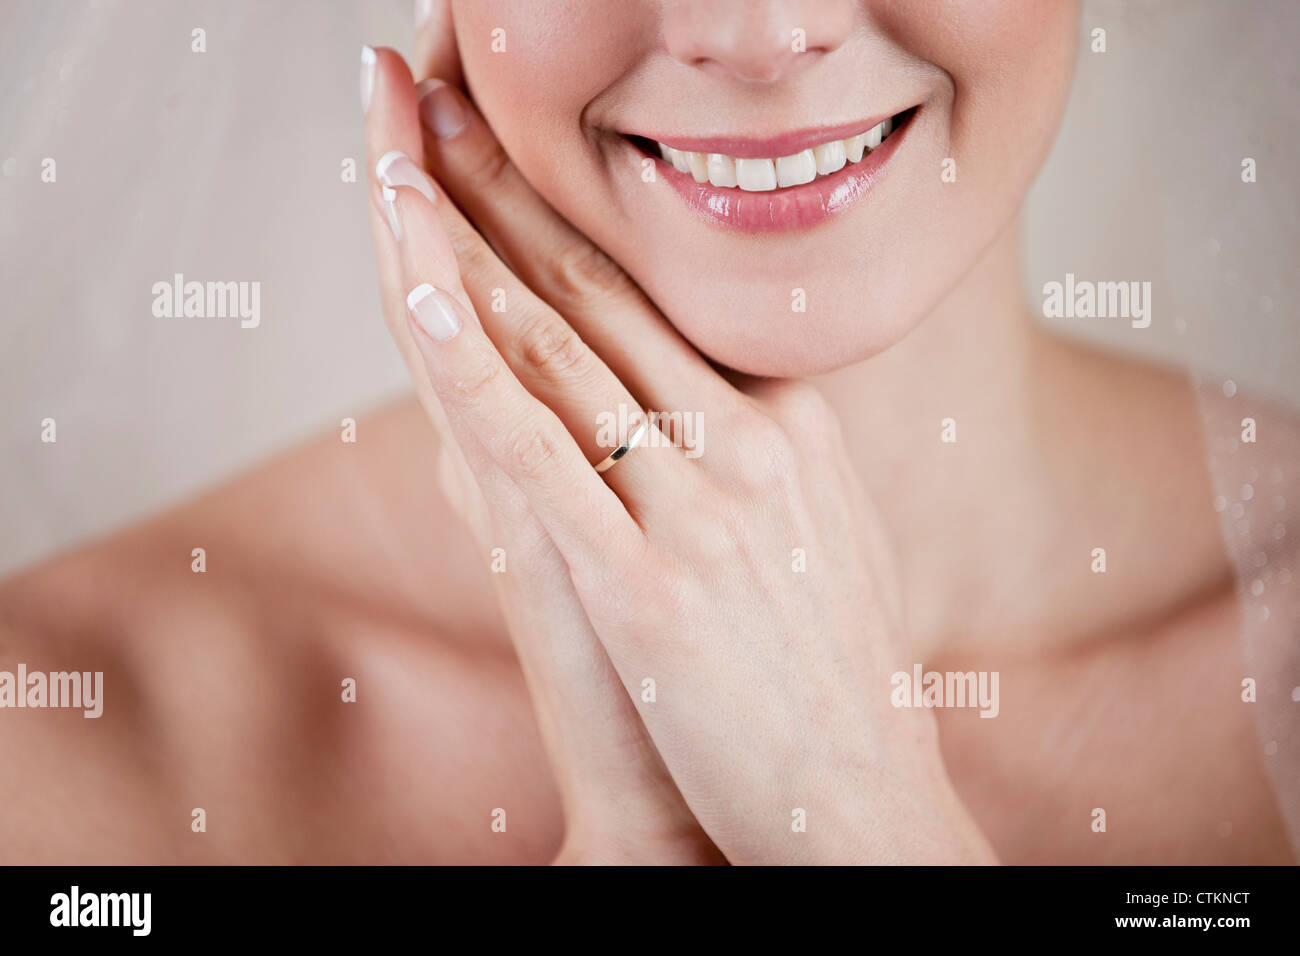 A young bride showing her wedding ring, close up - Stock Image